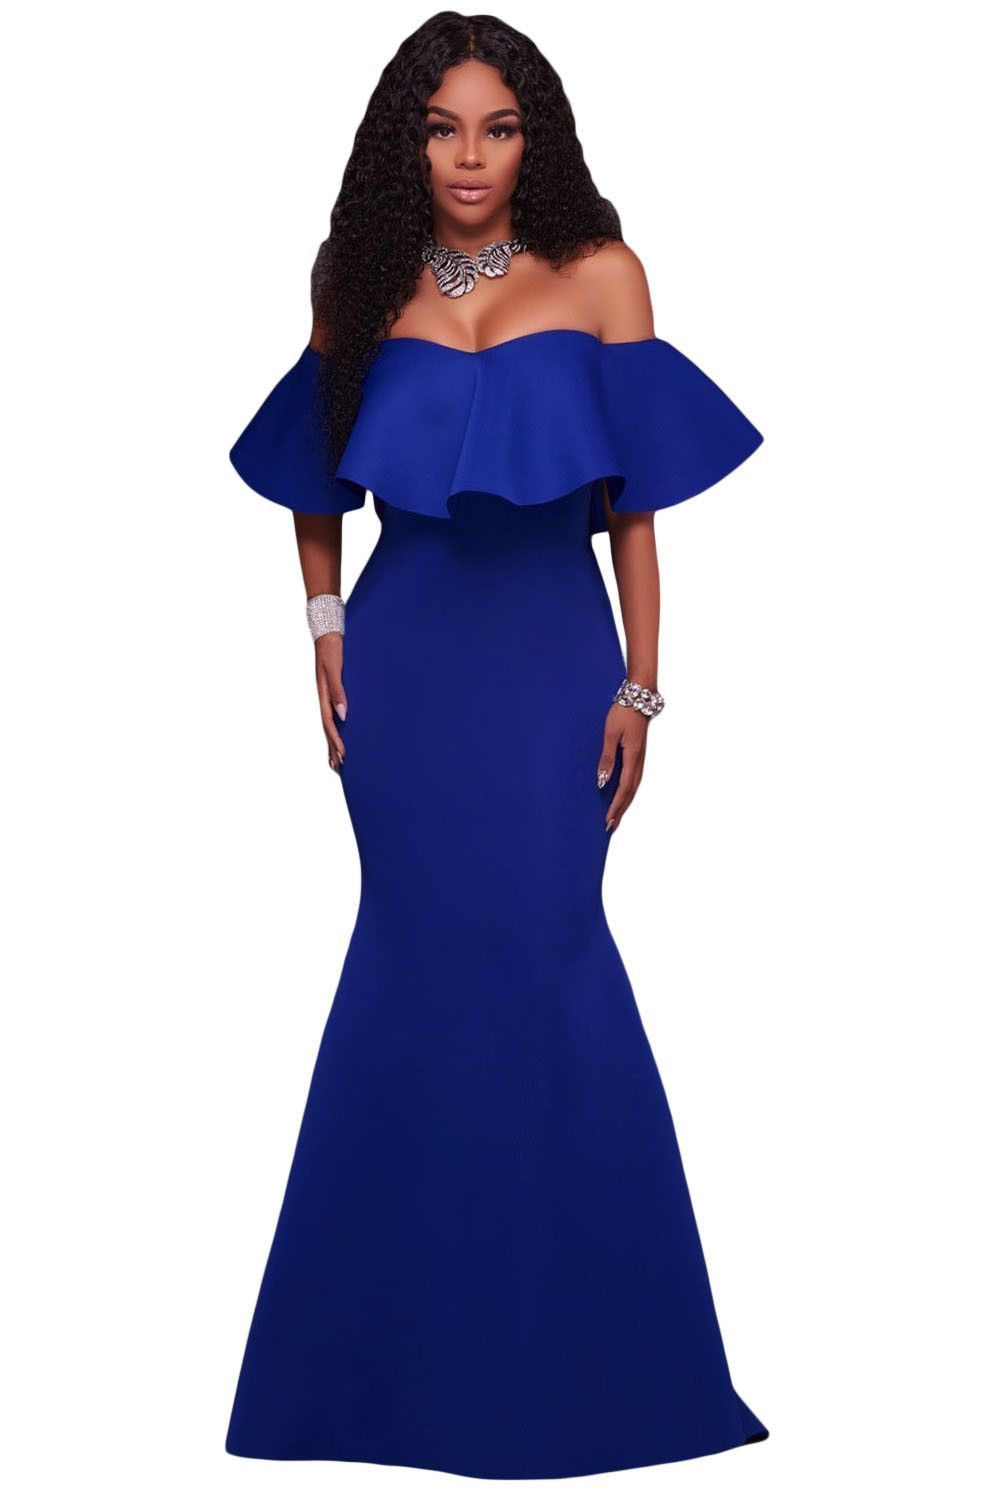 Royal Blue Ruffle Off Shoulder Ponti Maxi Party Dress CLOTHING in